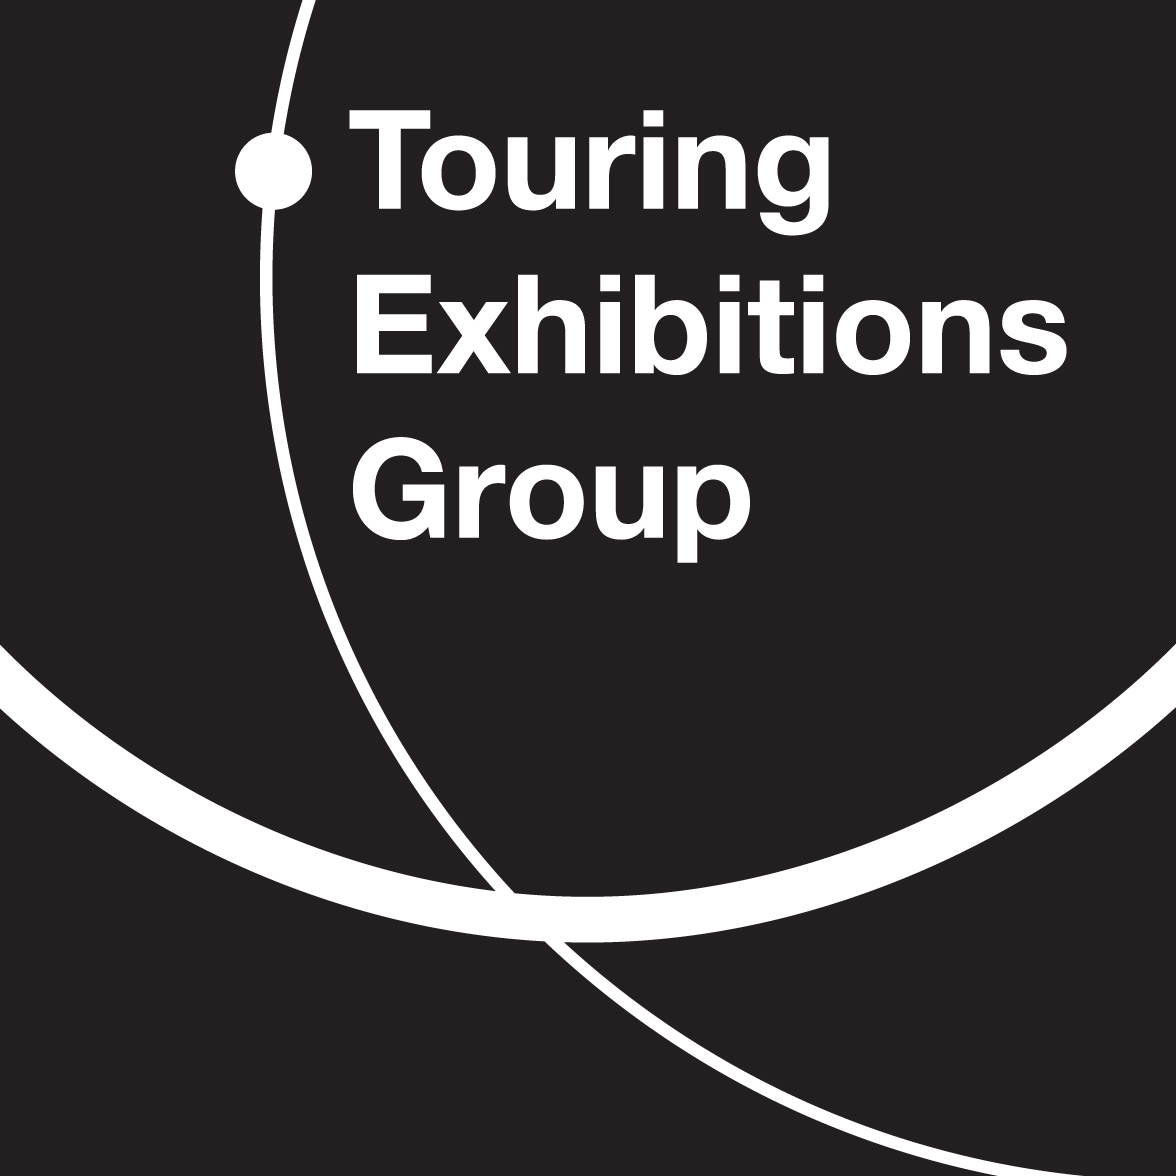 Touring Exhibitions Group